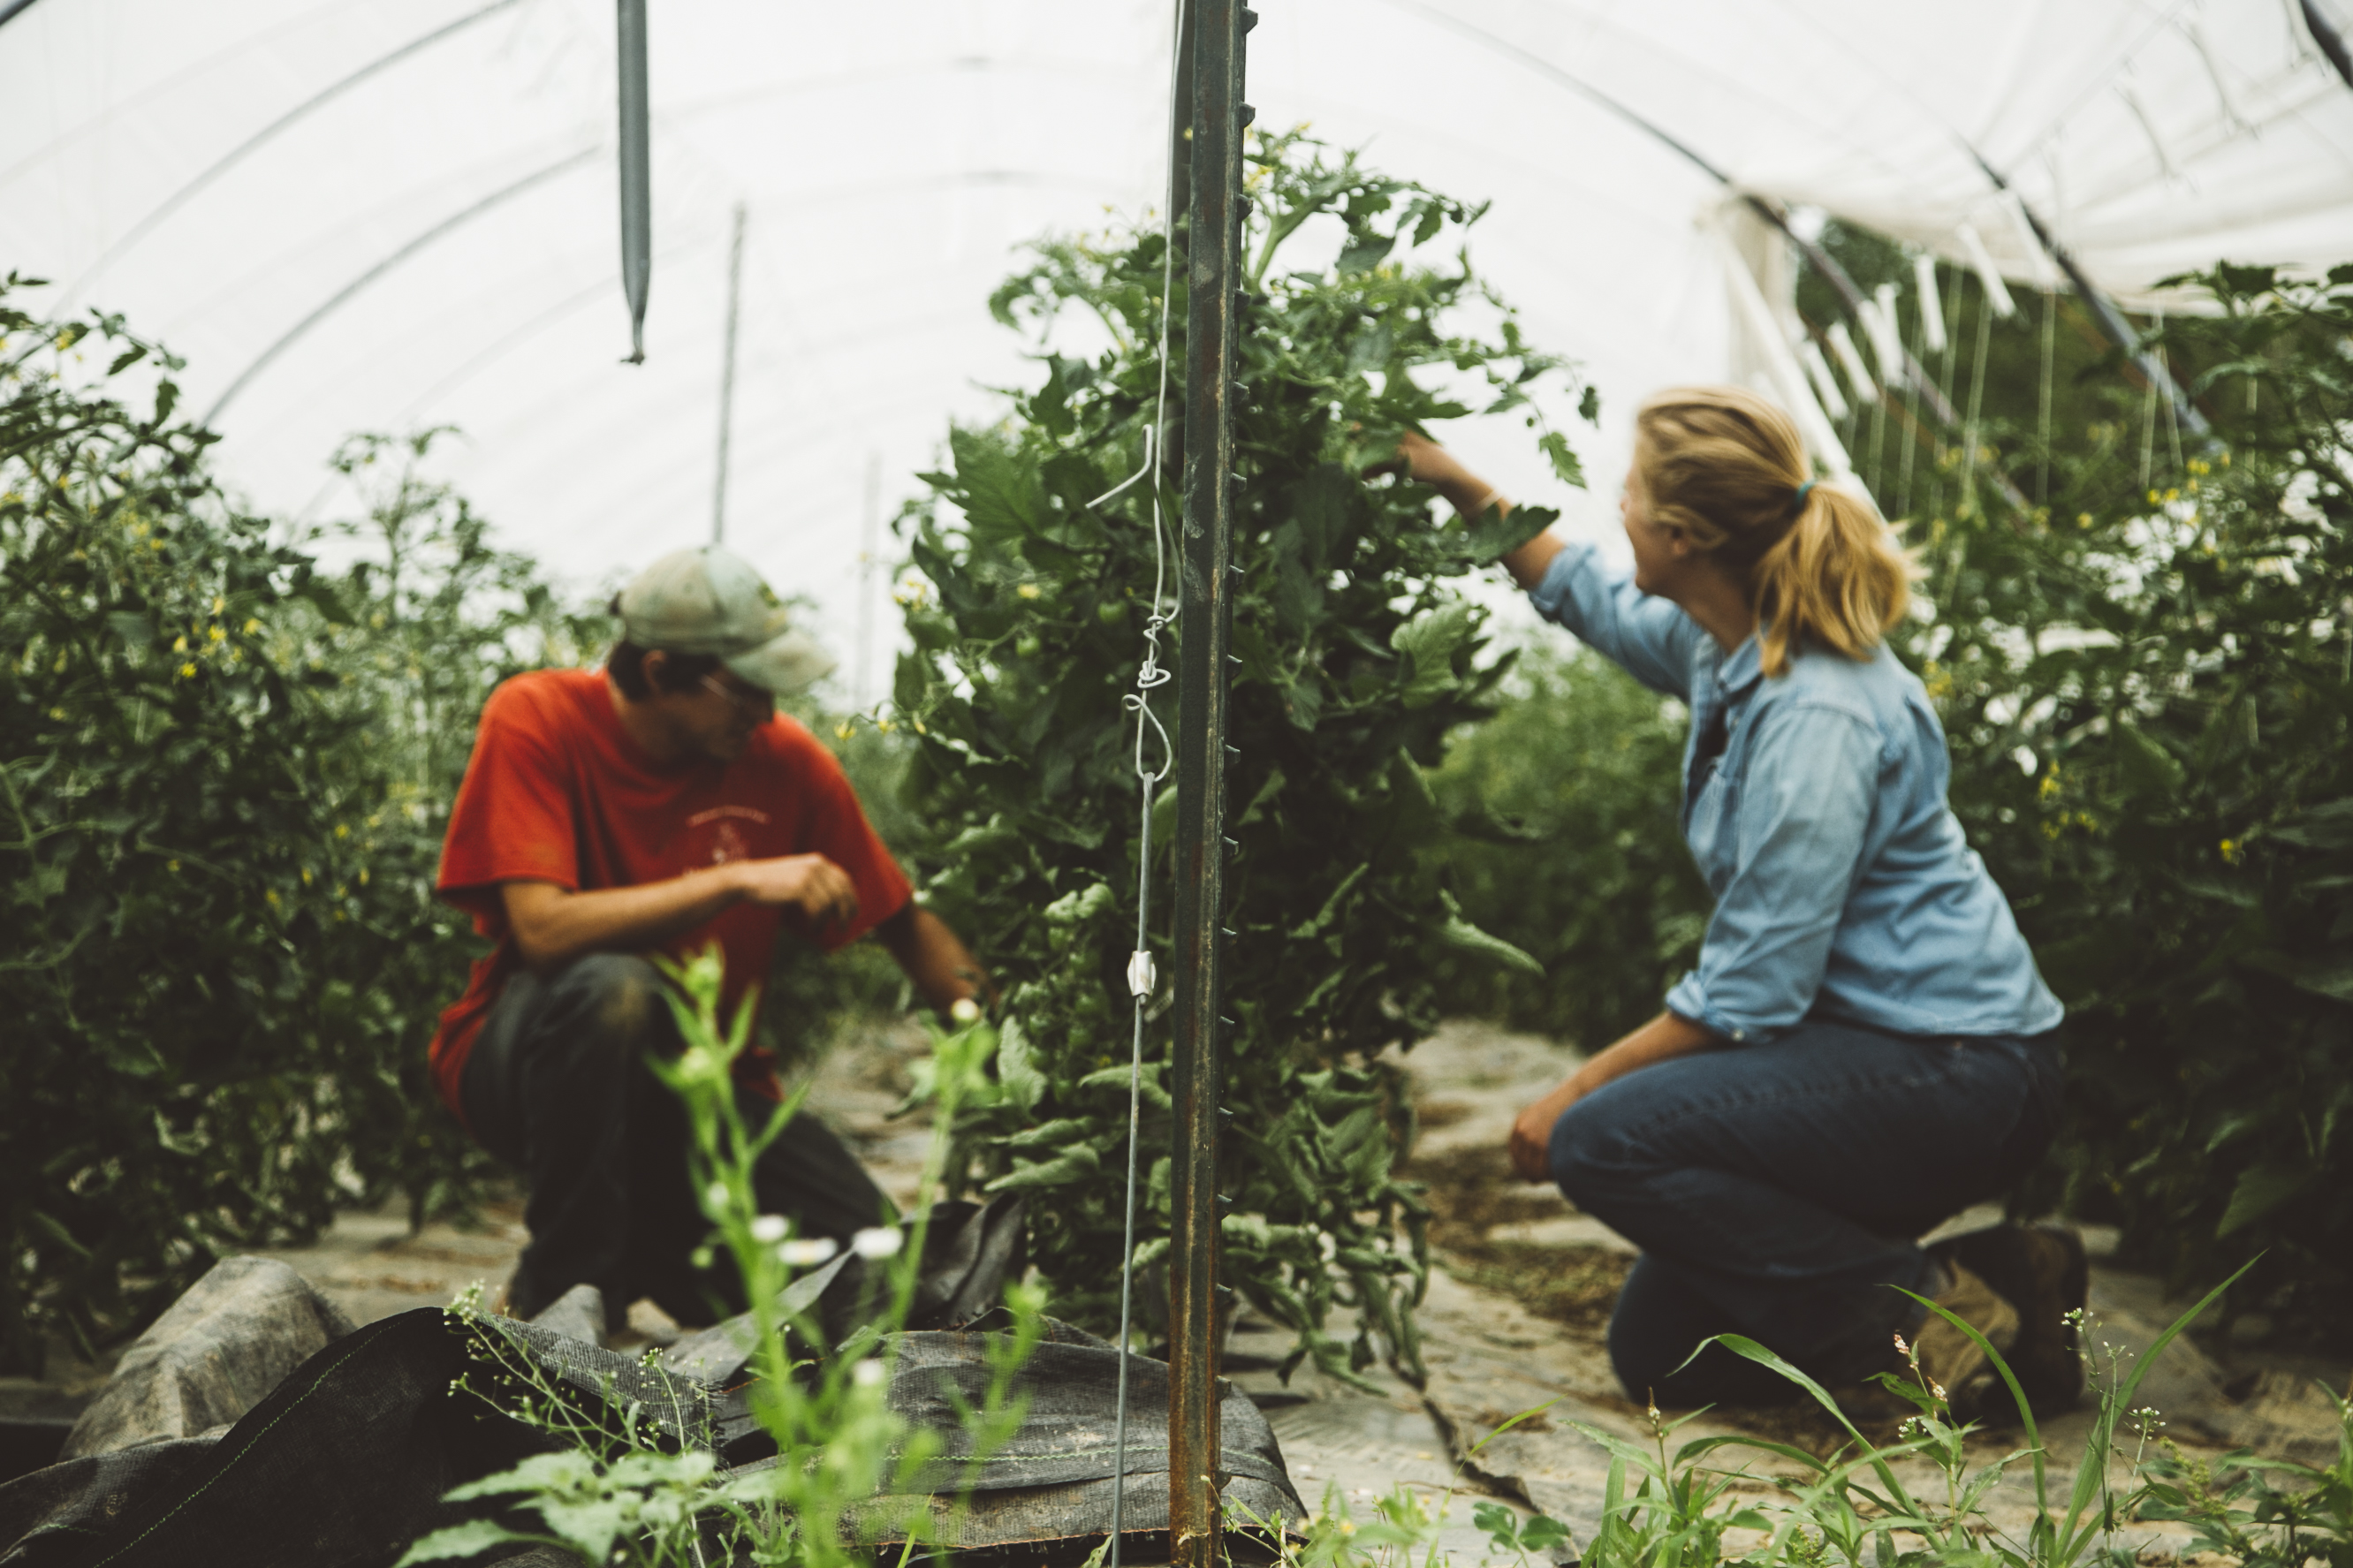 Week 6 - Tomato Countdown + Join us in supporting Liberation Farms' effort to acquire farmland